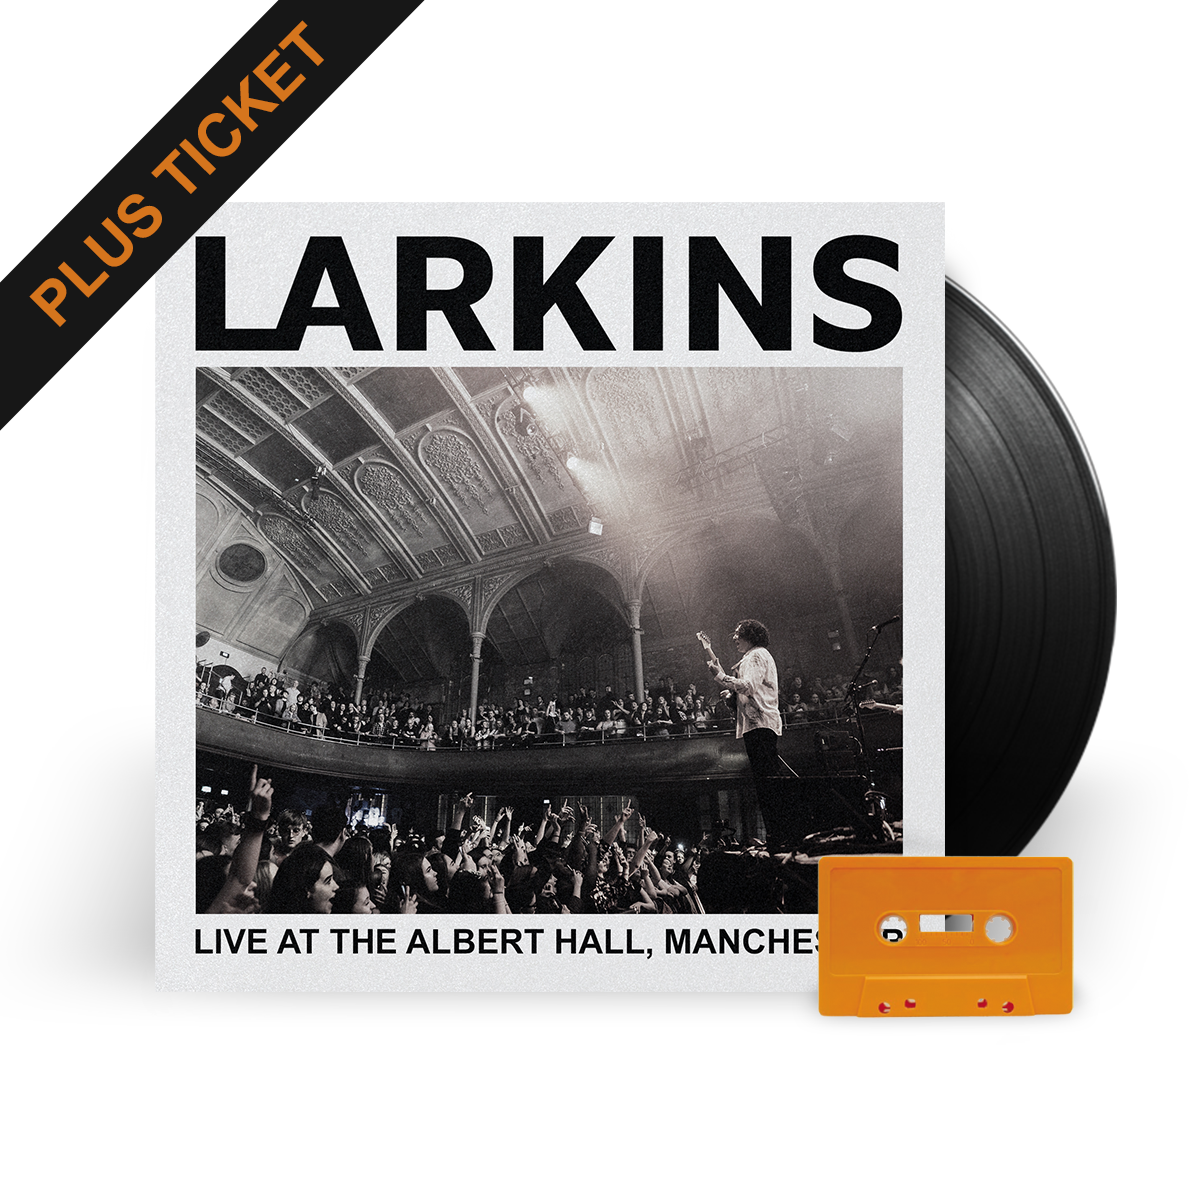 Dingwalls Ticket + Vinyl Live Album (50% off!) - Larkins